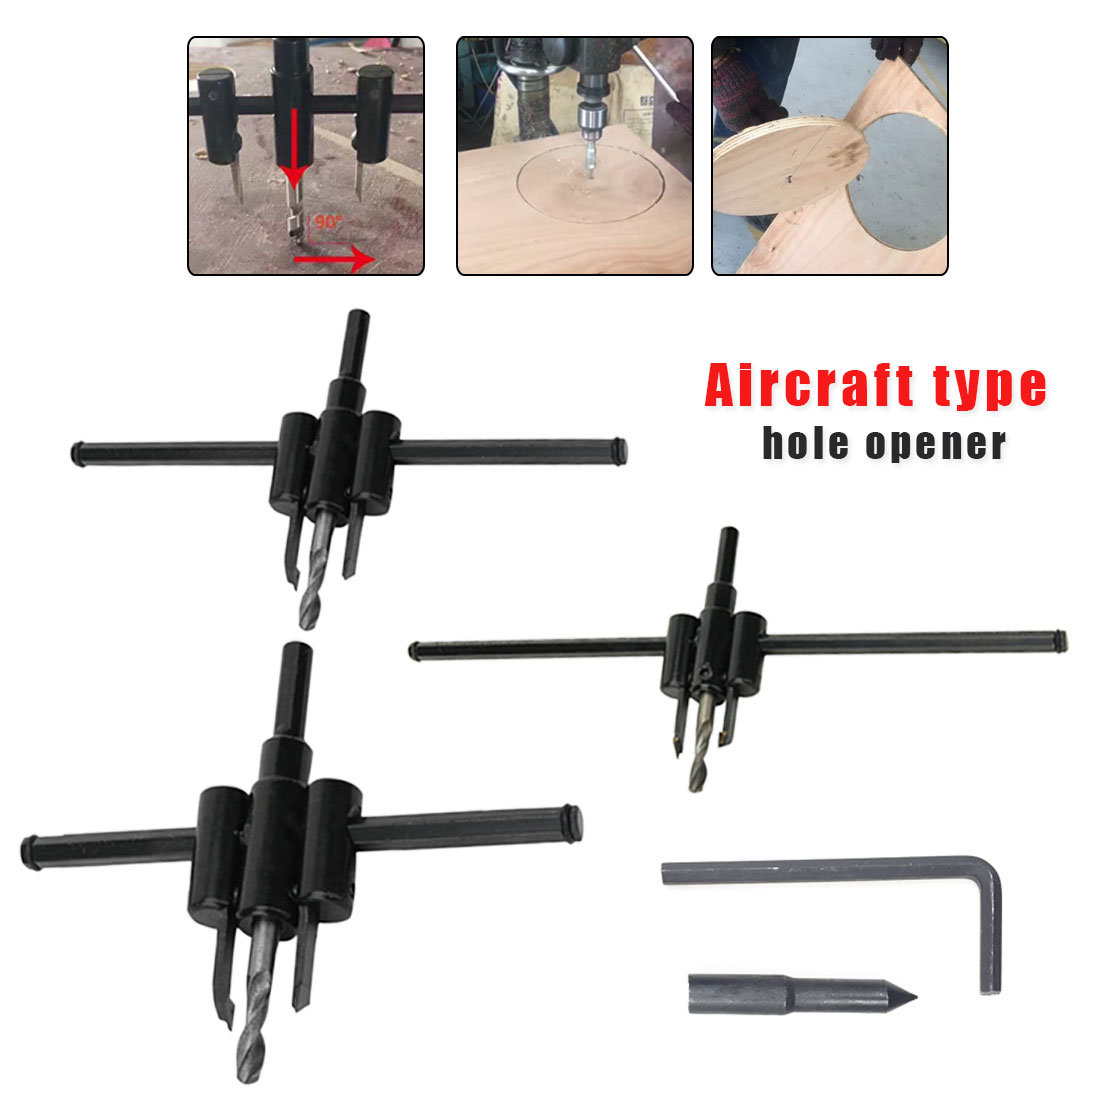 120mm/200mm/300mm Adjust Wood Circle Hole Saw Cutter Tool Kit Set Cordless Drill Bit For Woodworking DIY Adjustable